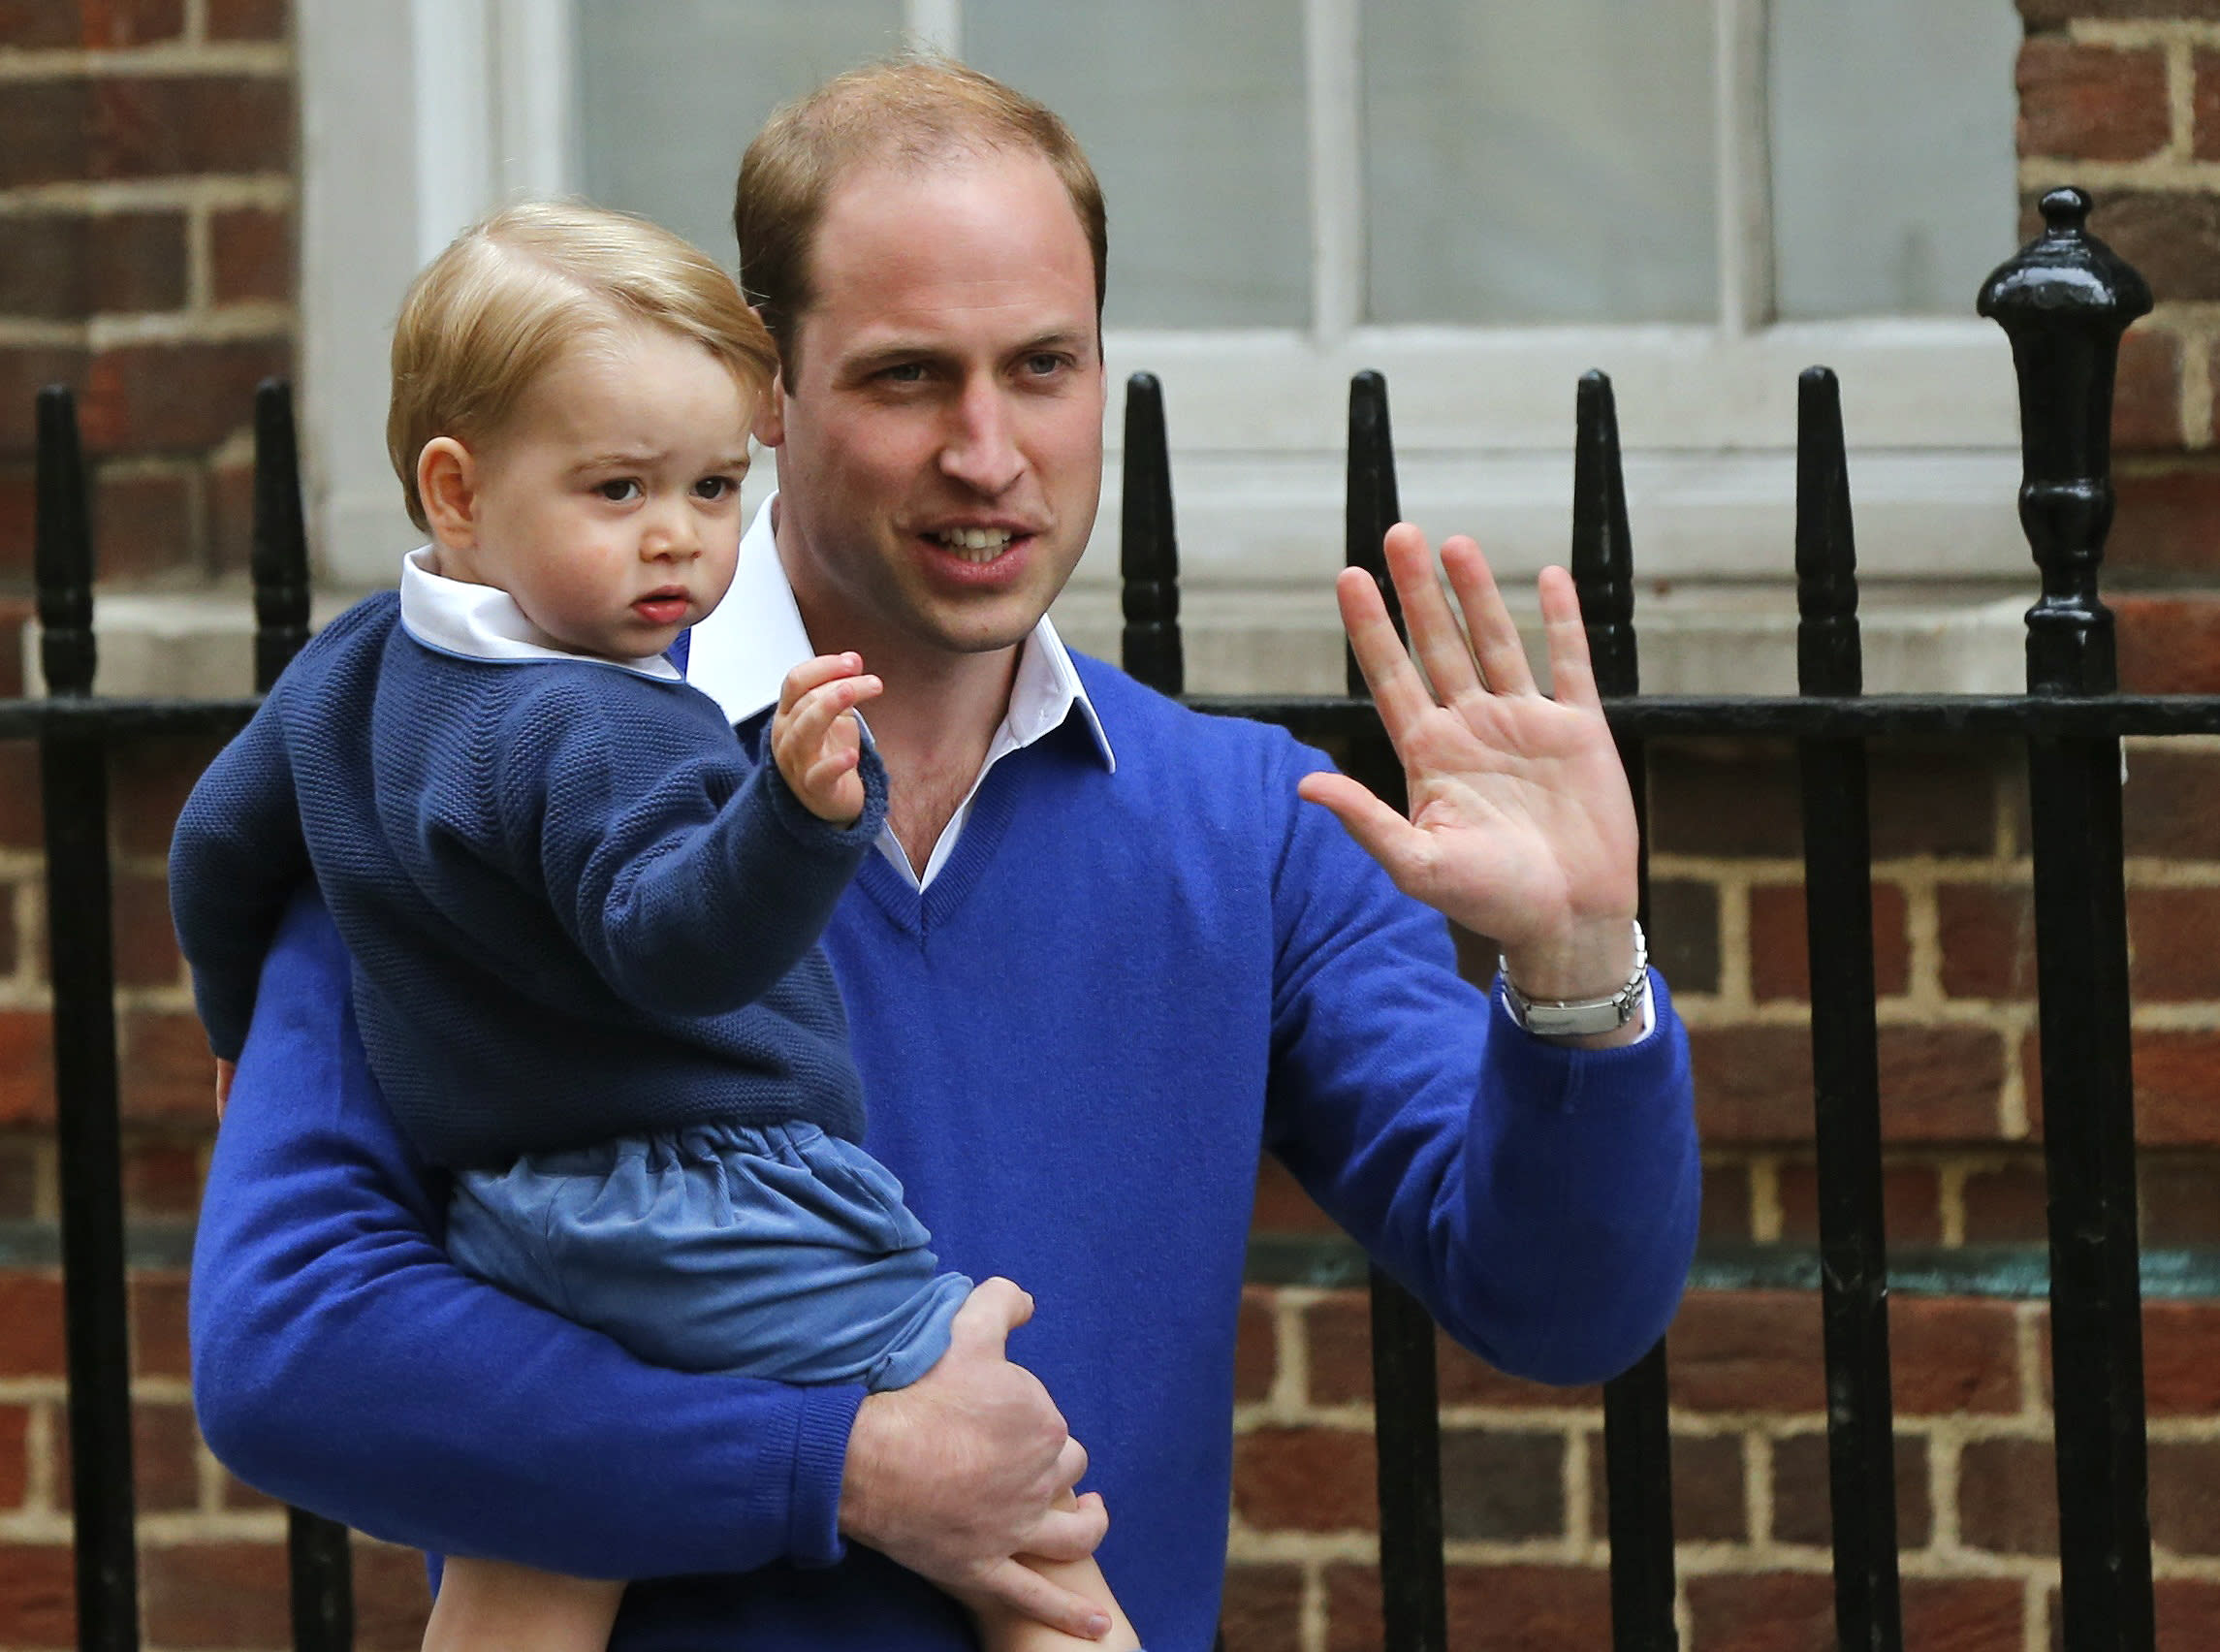 Britain's Prince William returns with his son George to the Lindo Wing of St Mary's Hospital, after the birth of his daughter in London, Britain May 2, 2015. Britain's Duchess of Cambridge, has given birth to a daughter, the couple's residence Kensington Palace announced on Saturday.      REUTERS/Suzanne Plunkett